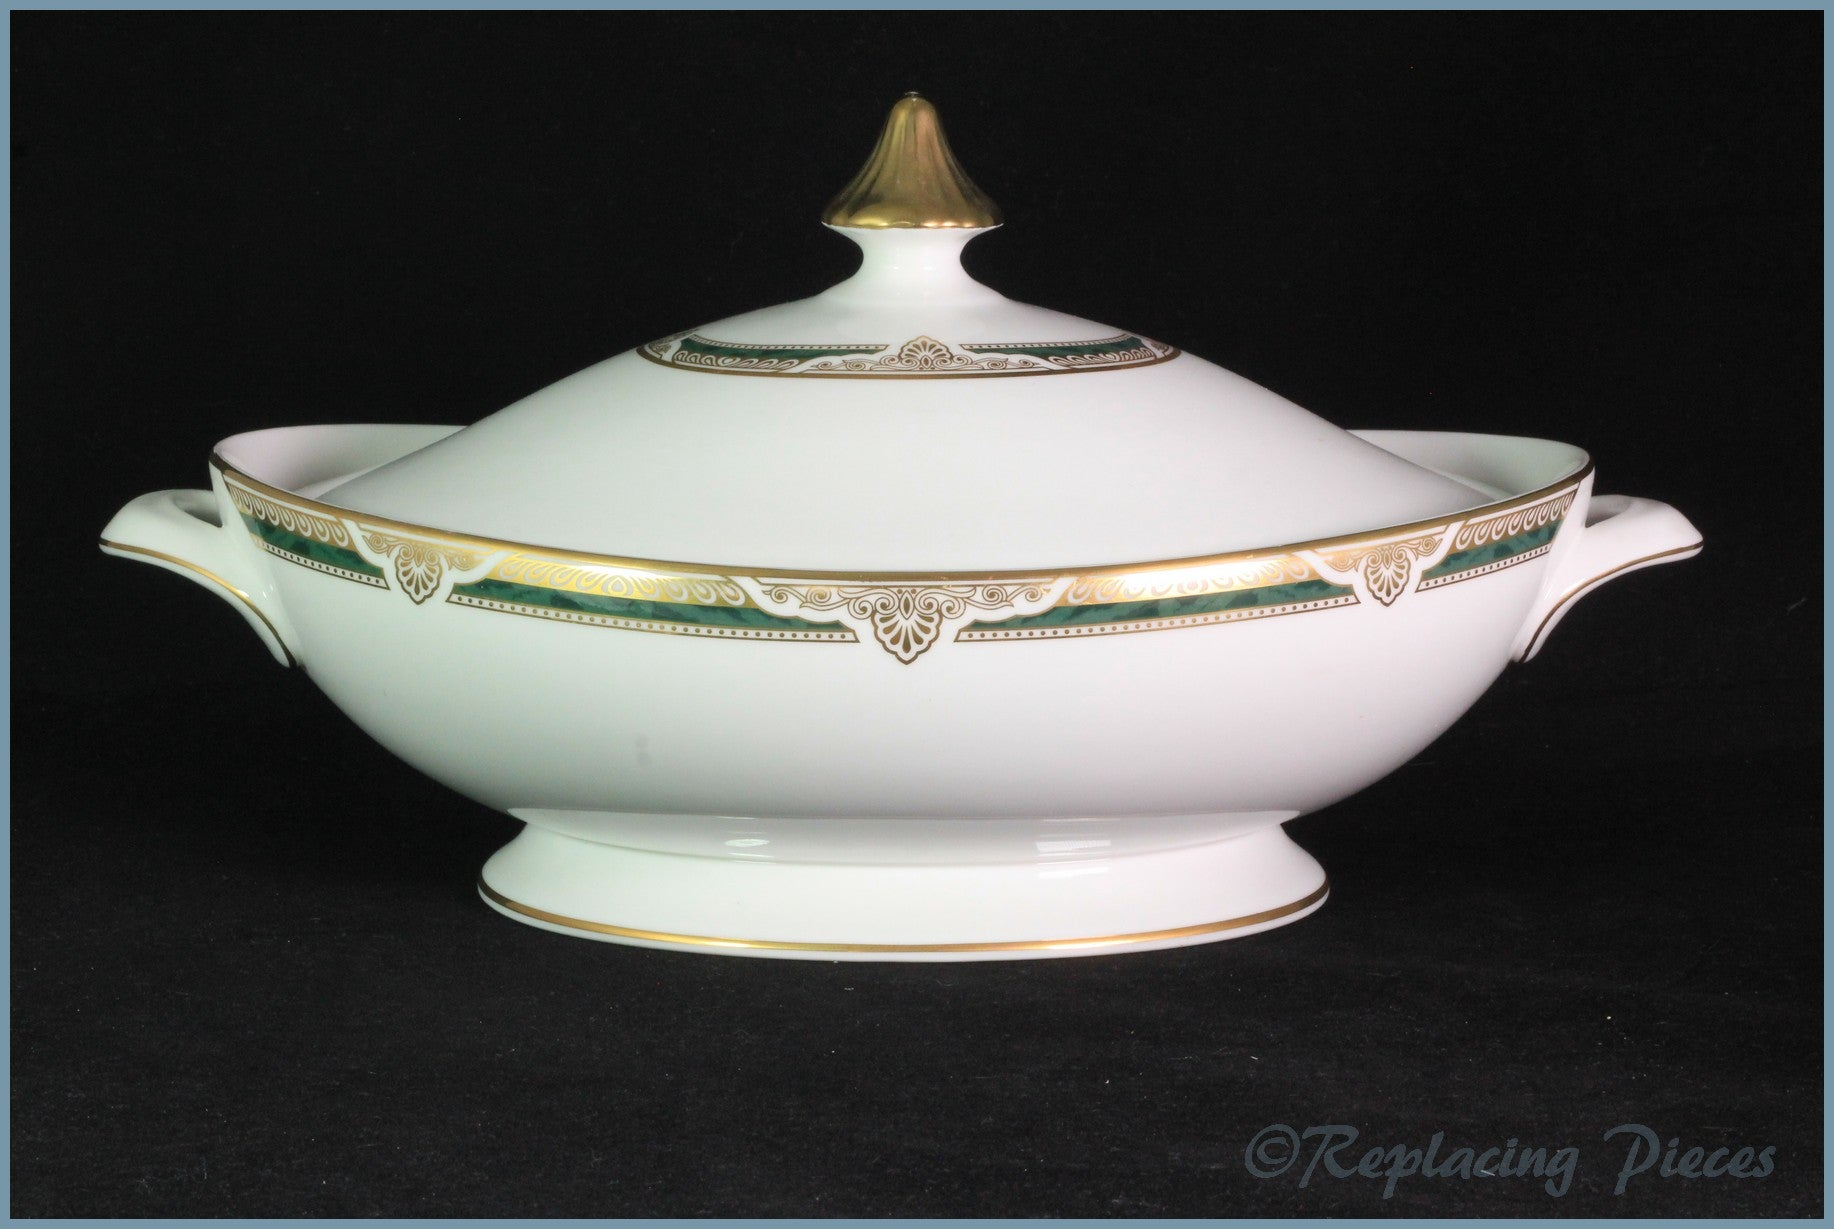 Royal Doulton - Forsyth (H5197) - Lidded Vegetable Dish